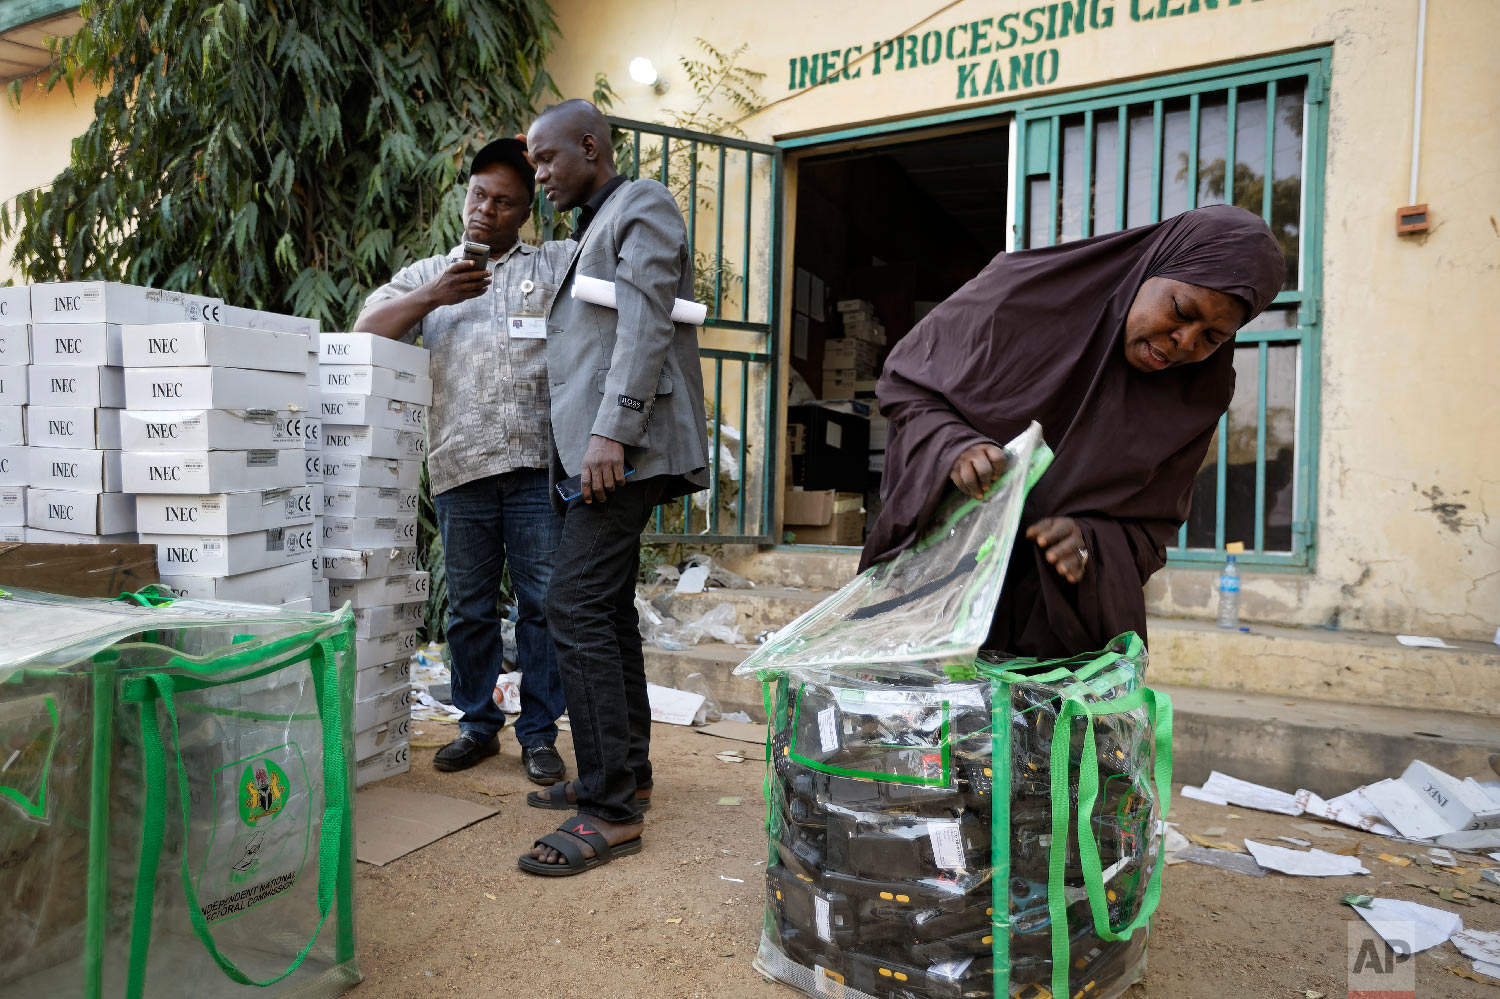 An electoral worker prepares identity card and biometric verification readers, at the offices of the Independent National Electoral Commission in Kano, northern Nigeria, Feb. 14, 2019. (AP Photo/Ben Curtis)